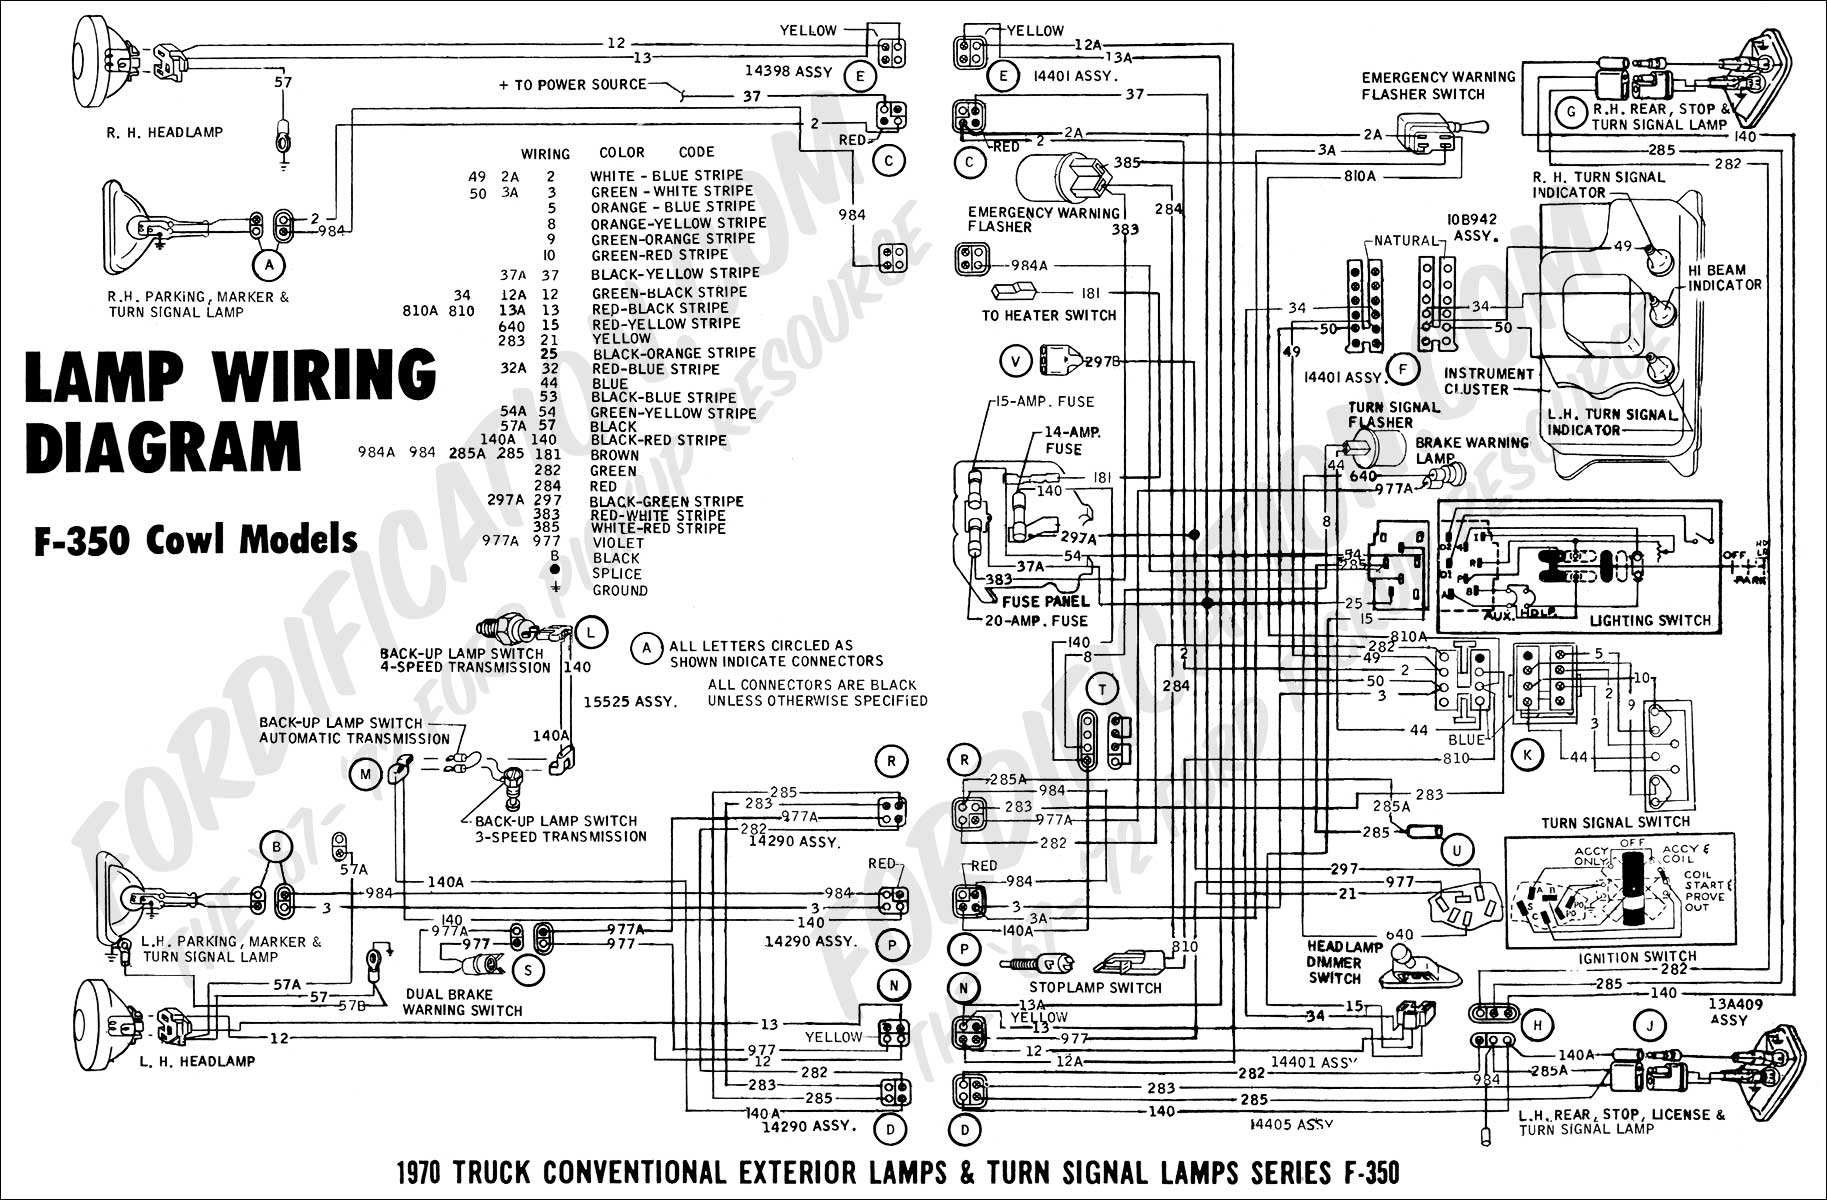 Ford Super Duty Trailer Wiring Diagram | Trailer Wiring ...